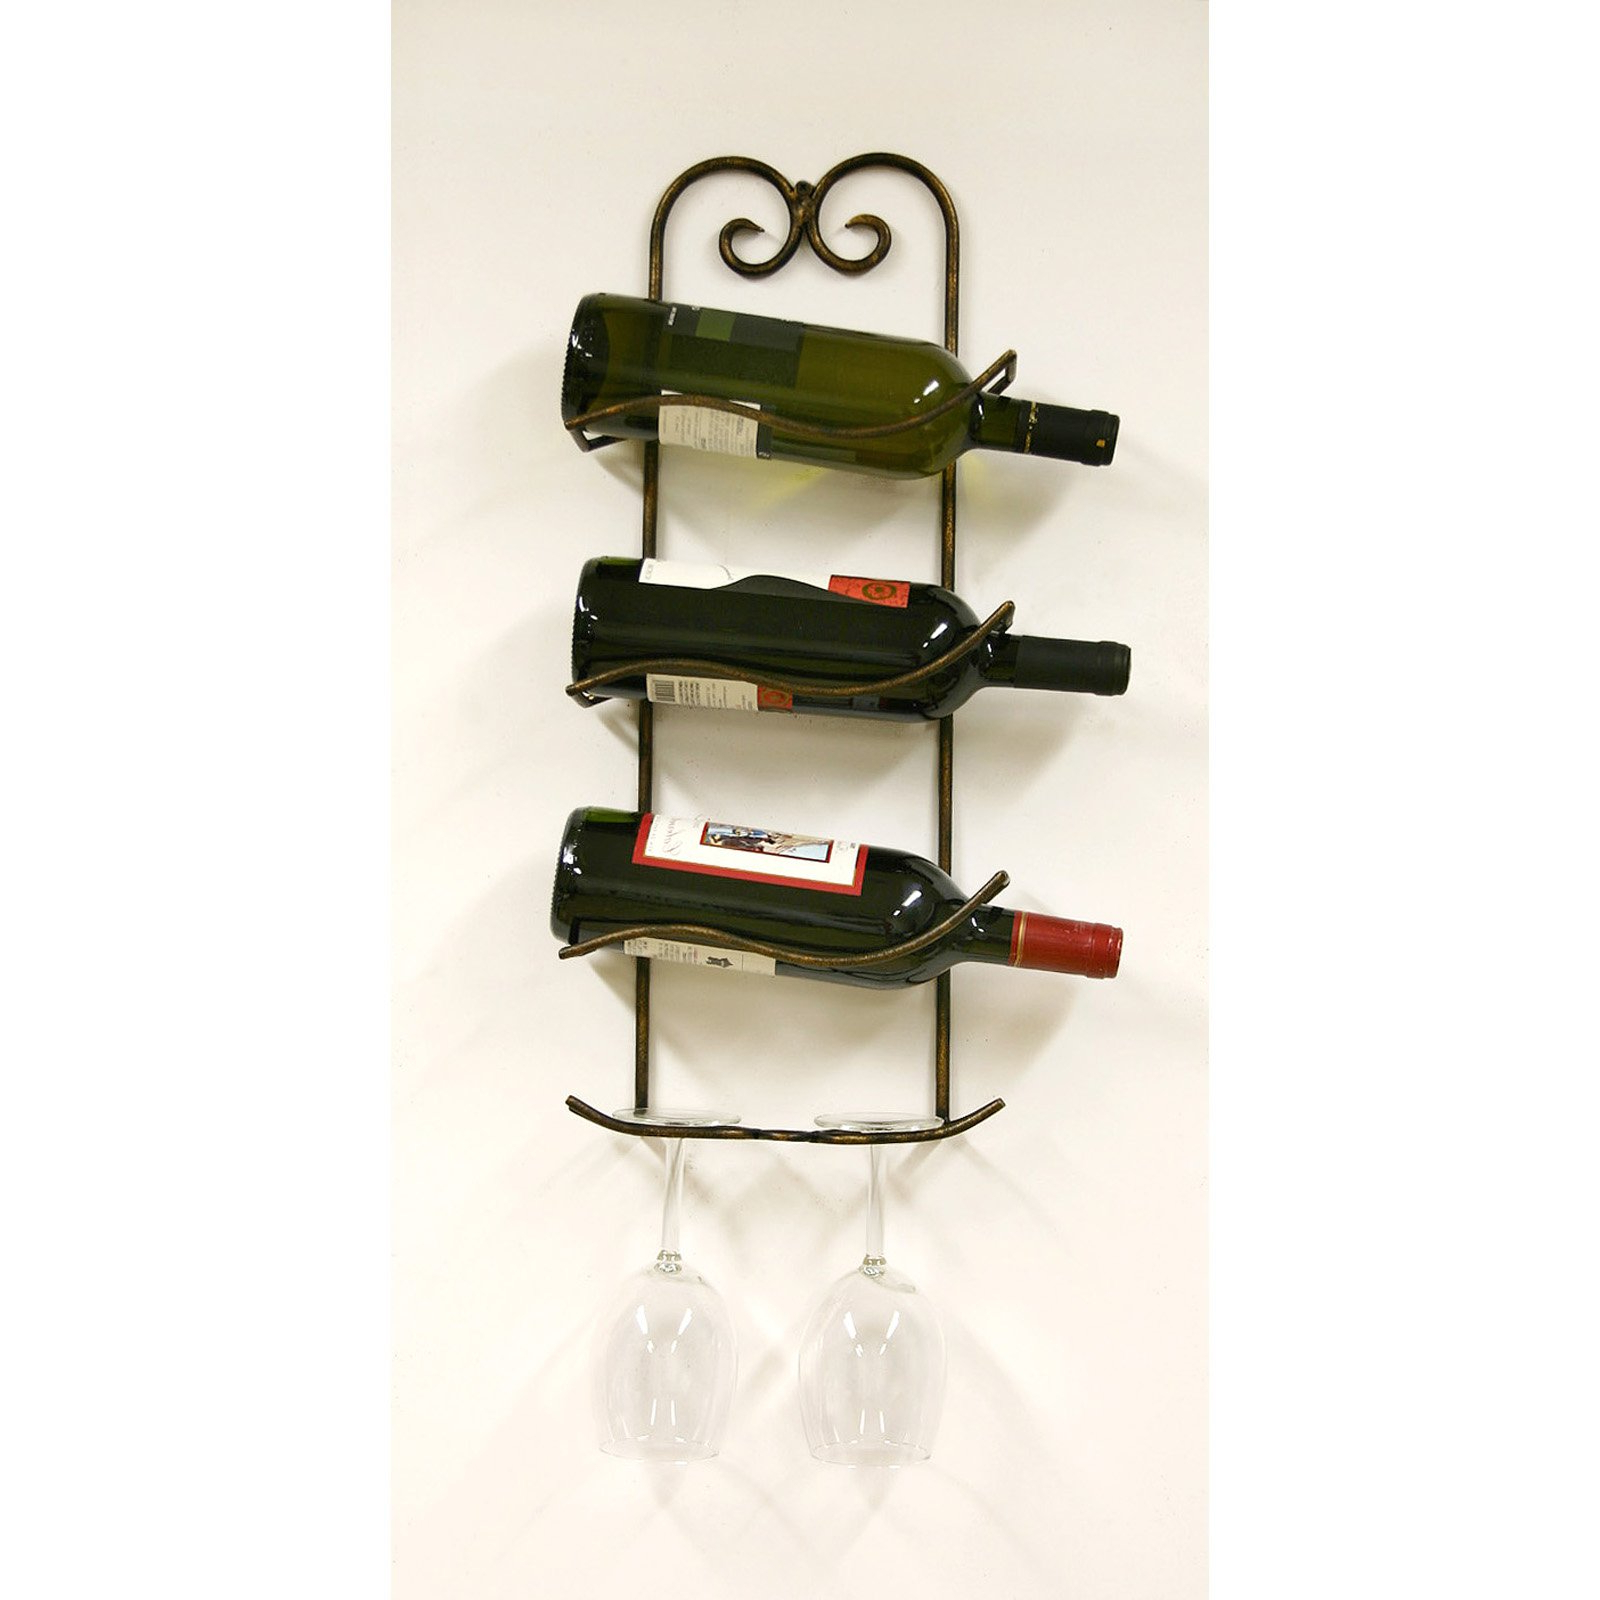 Preferred Three Glass Holder Wall Decor Regarding Regent 3 Bottle Wall Wine/glass Holder – Walmart (View 12 of 20)